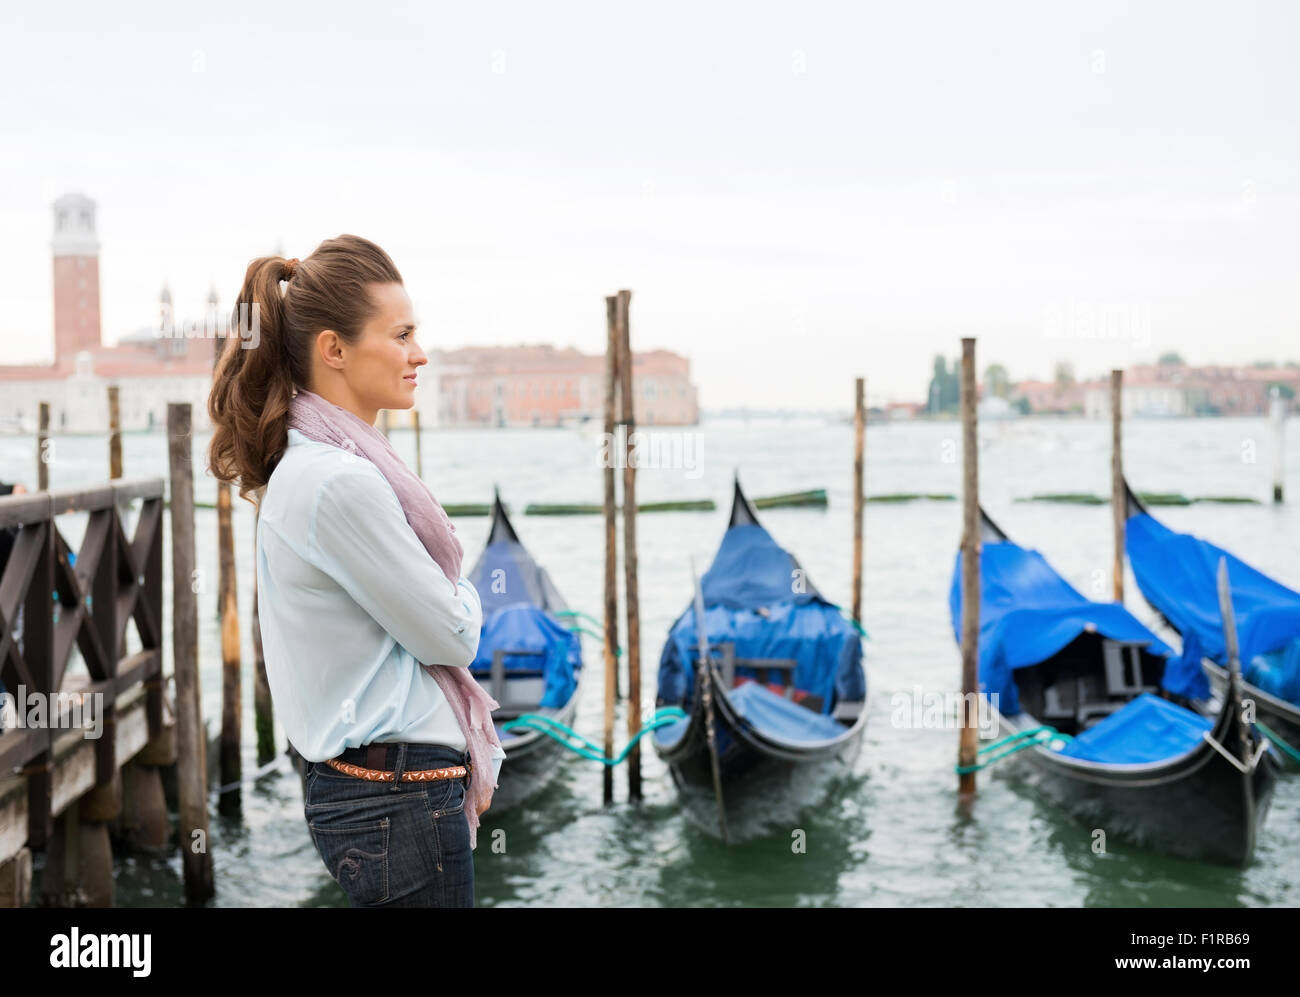 A woman stands, dreaming of times past, listening to the sound of the water lapping against the moored gondolas. - Stock Image